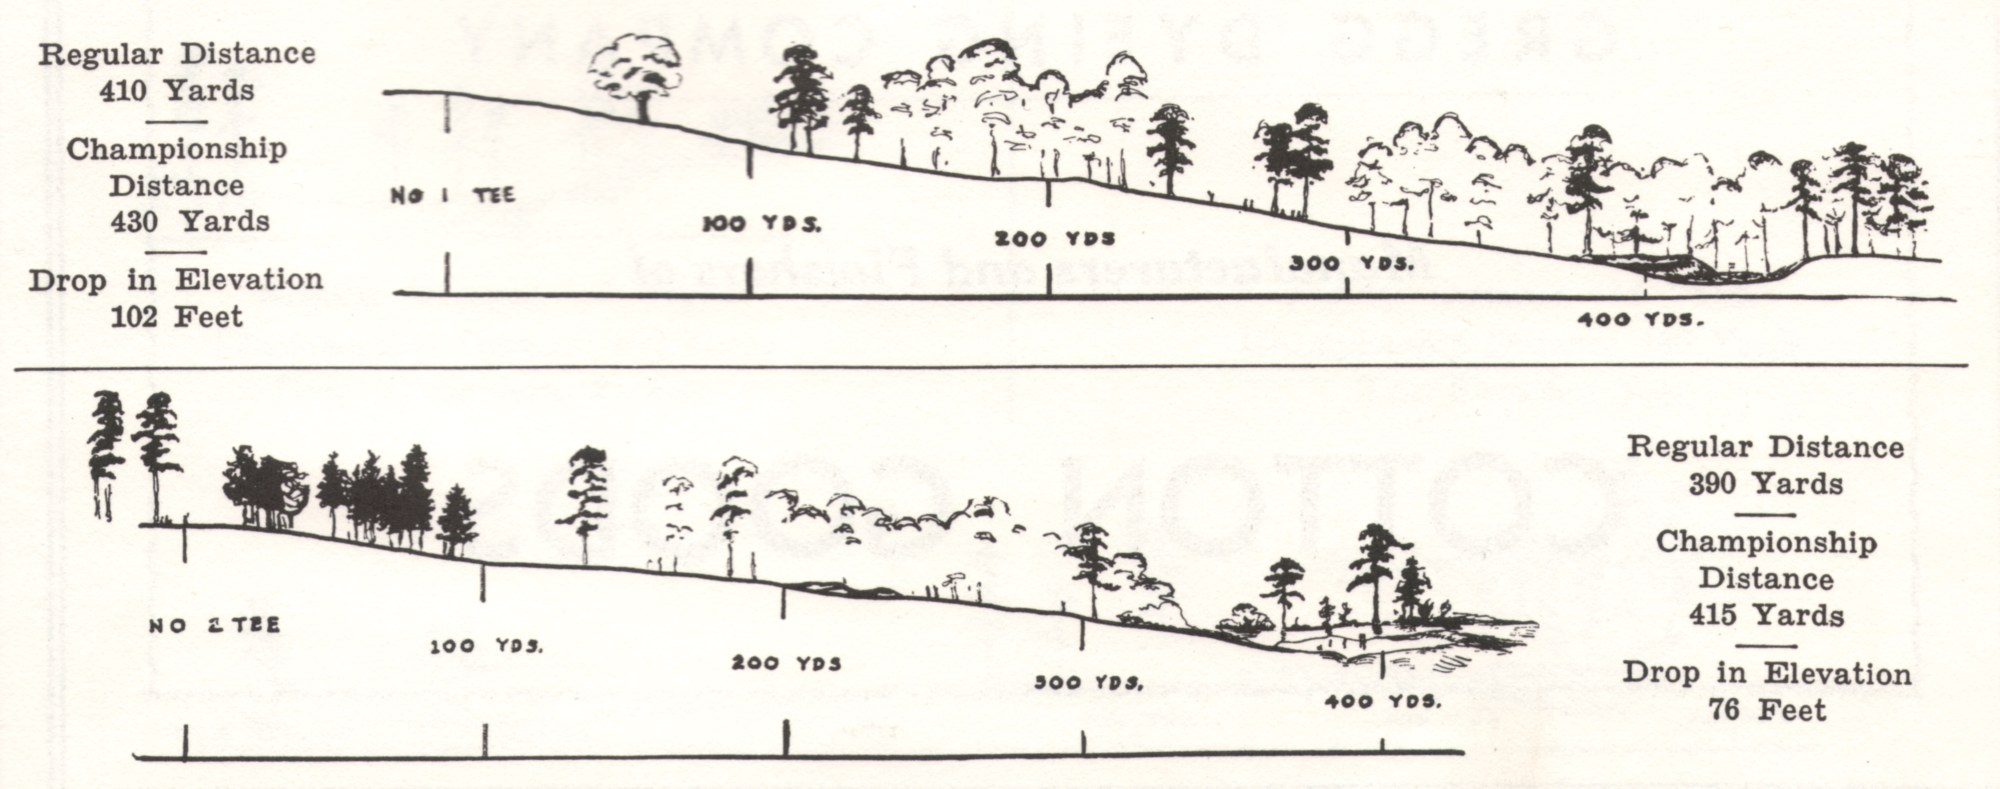 hight resolution of this diagram is from the program of the first masters in 1934 it shows